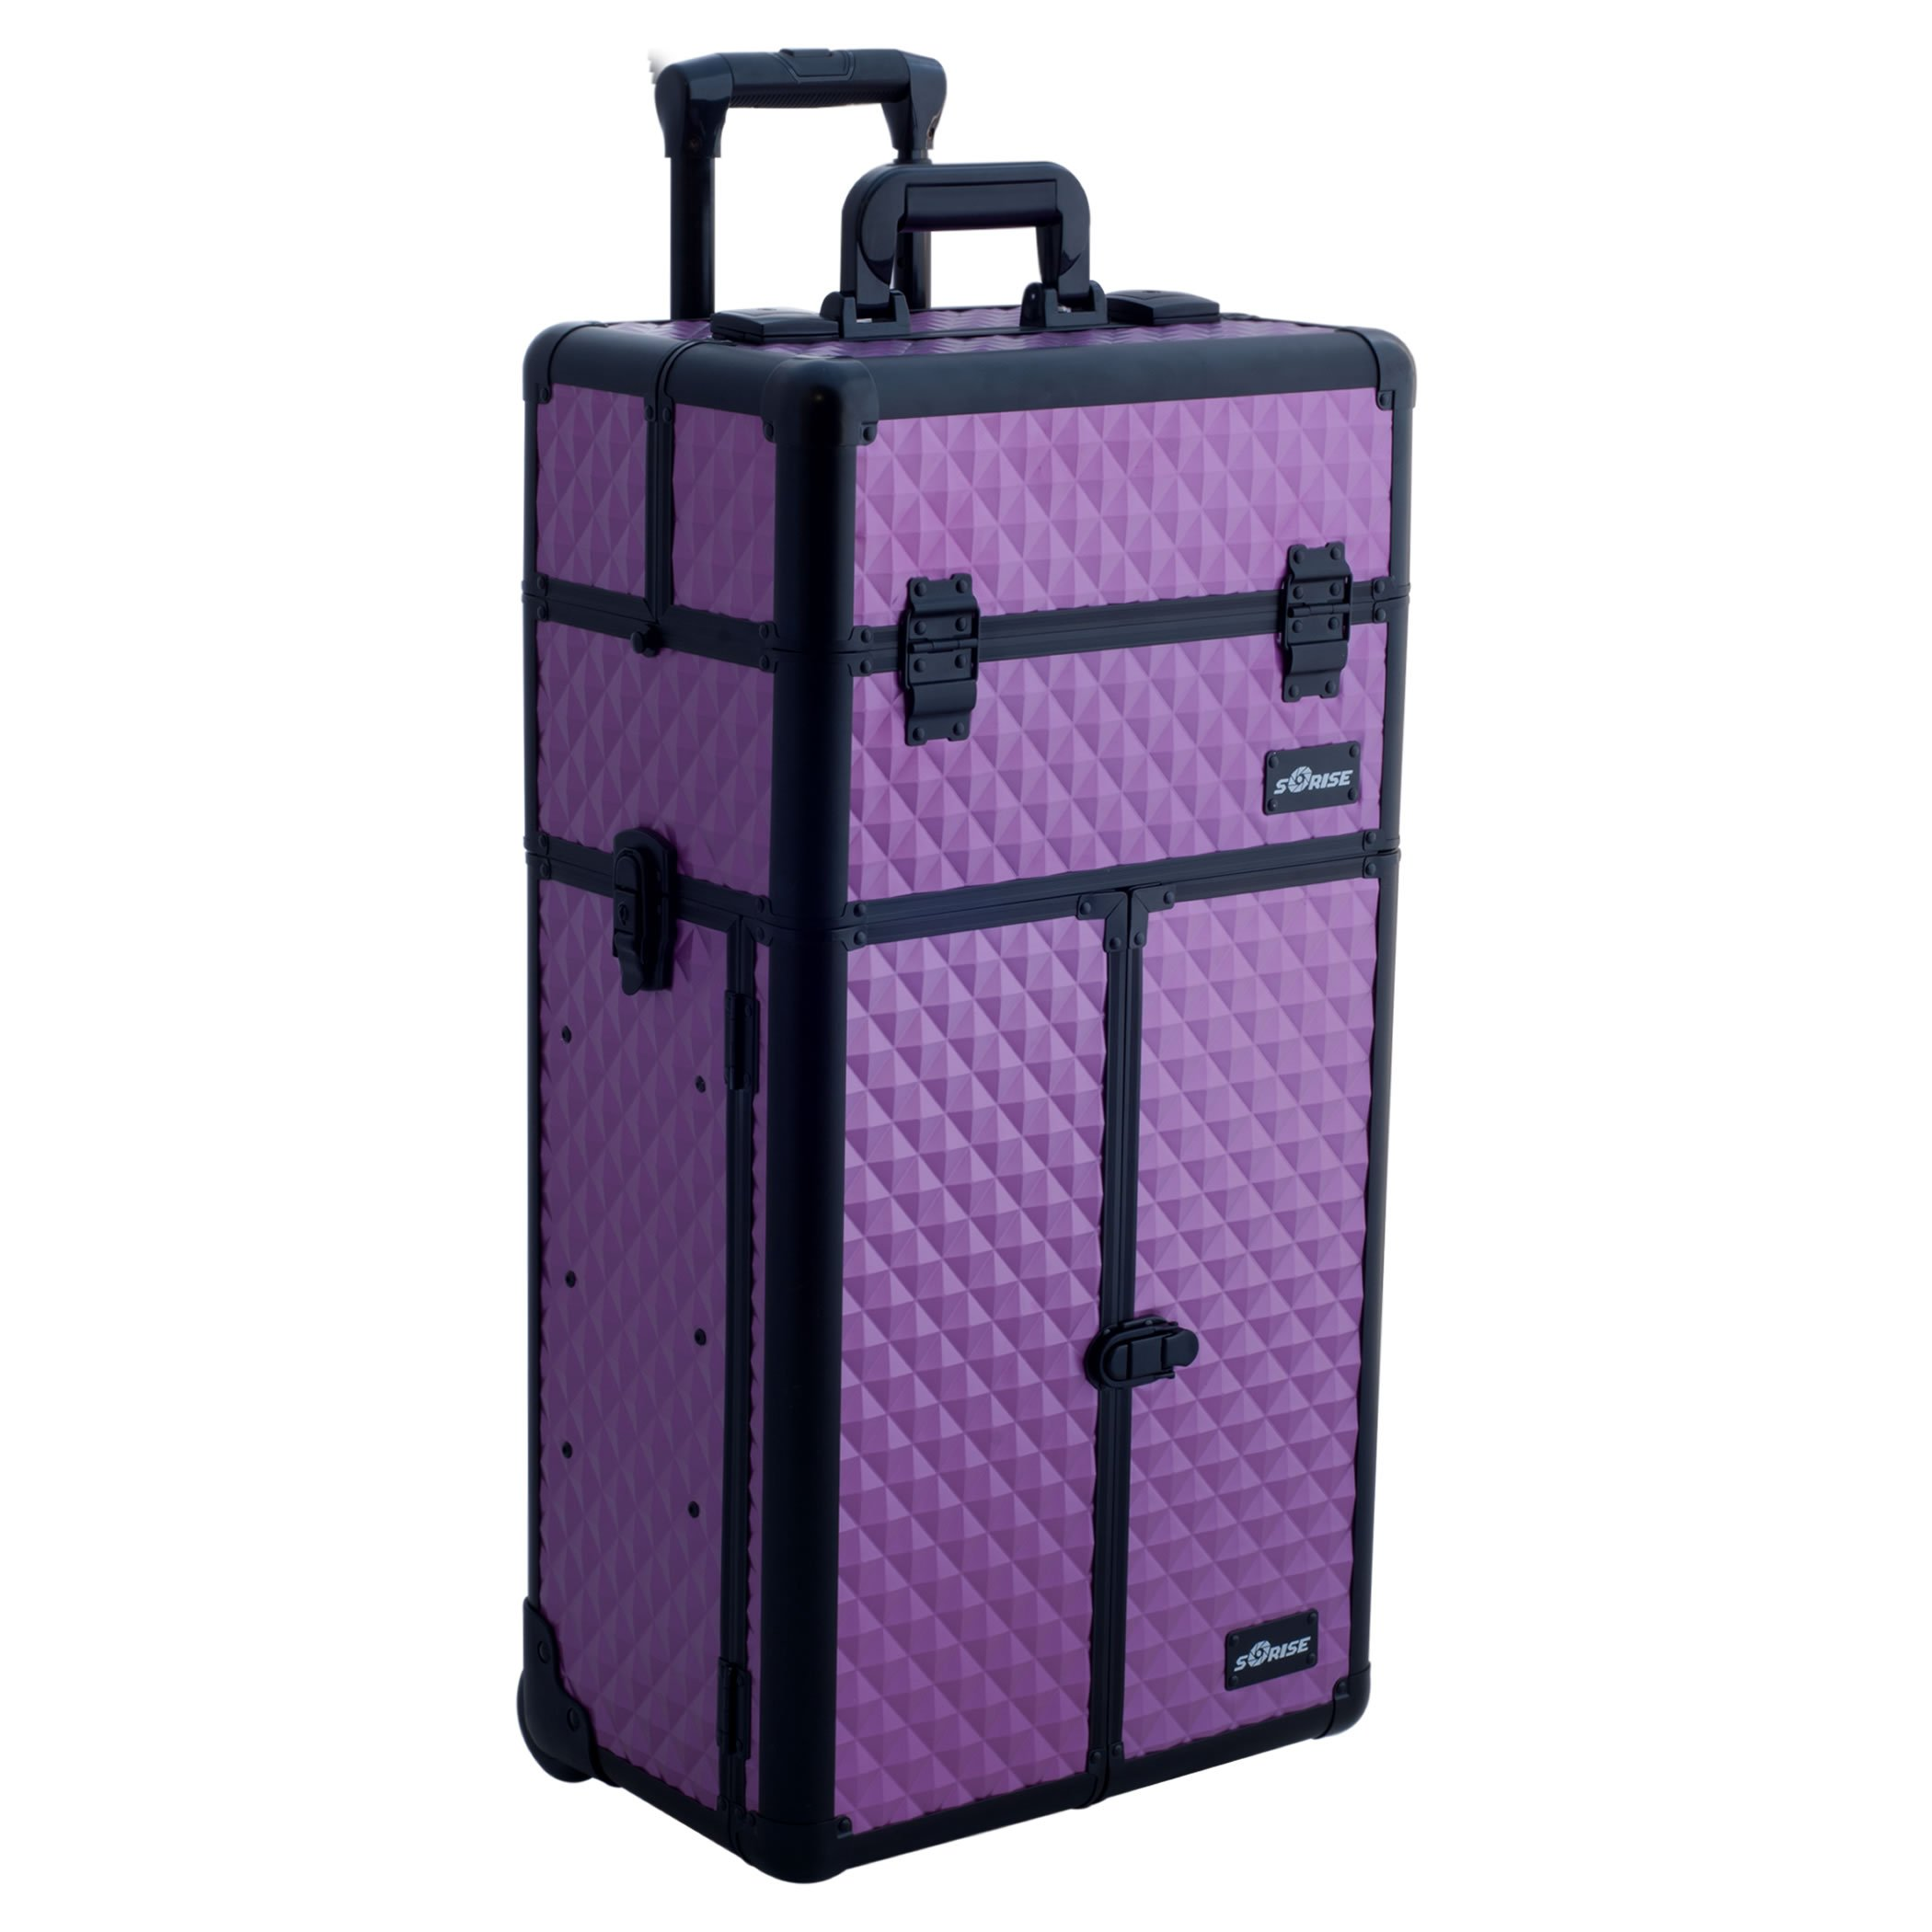 SUNRISE Rolling Makeup Case 2 in 1 Cosmetic Artist I3266 Aluminum, French Doors, 3 Sliding Tray and 2 Drawers, Locking with Mirror, Purple Diamond by SunRise